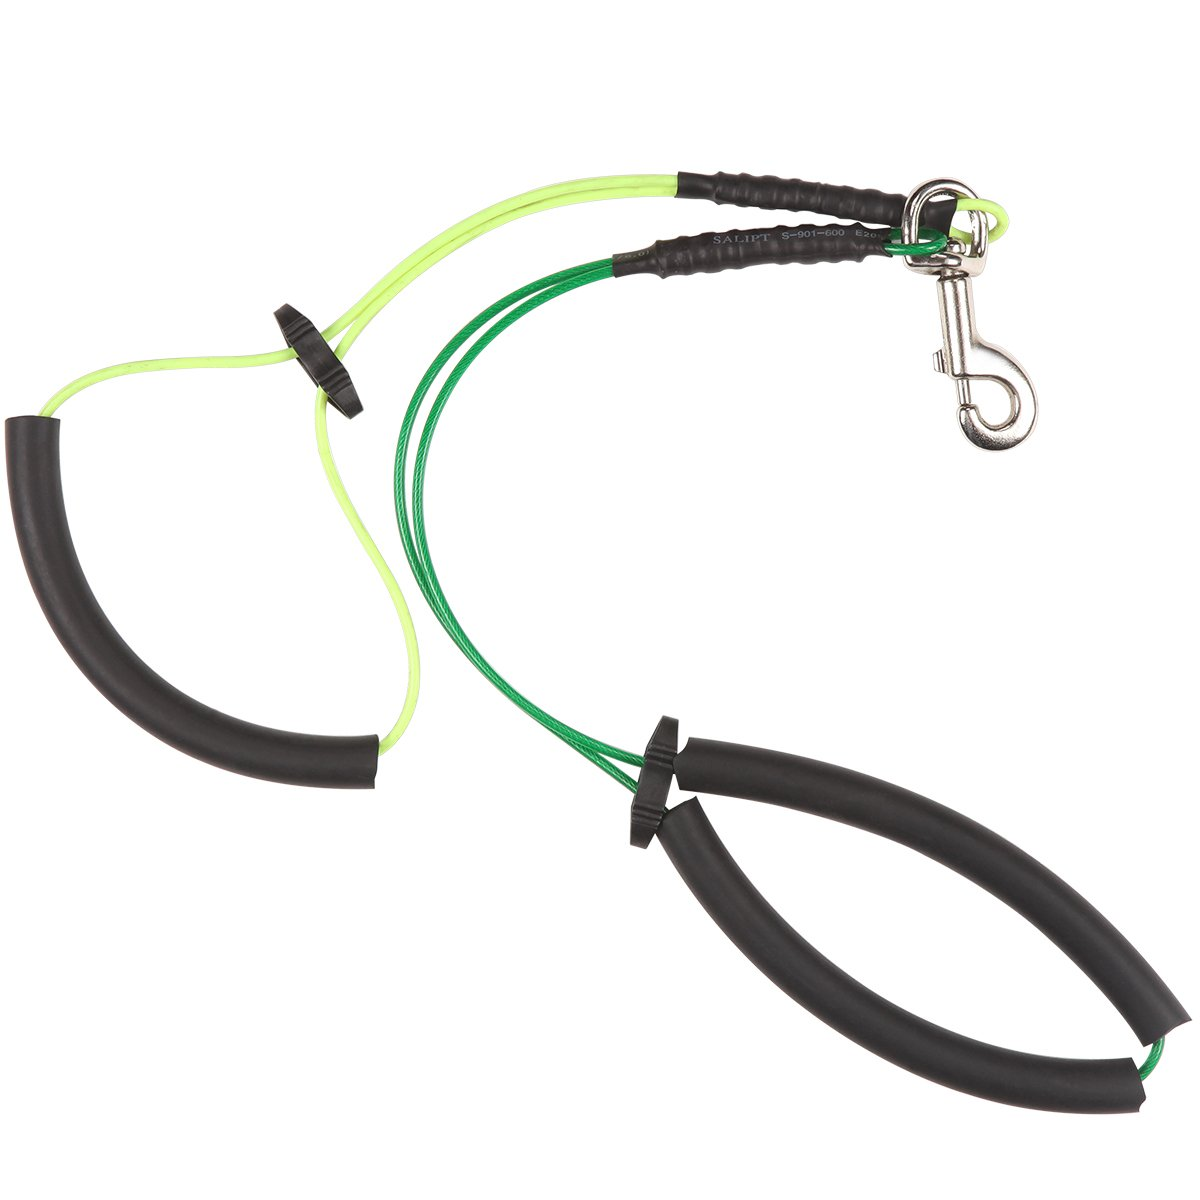 No Sit Dog Grooming Cable Loop Haunch Holder Restraint for Small Medium Large Dogs